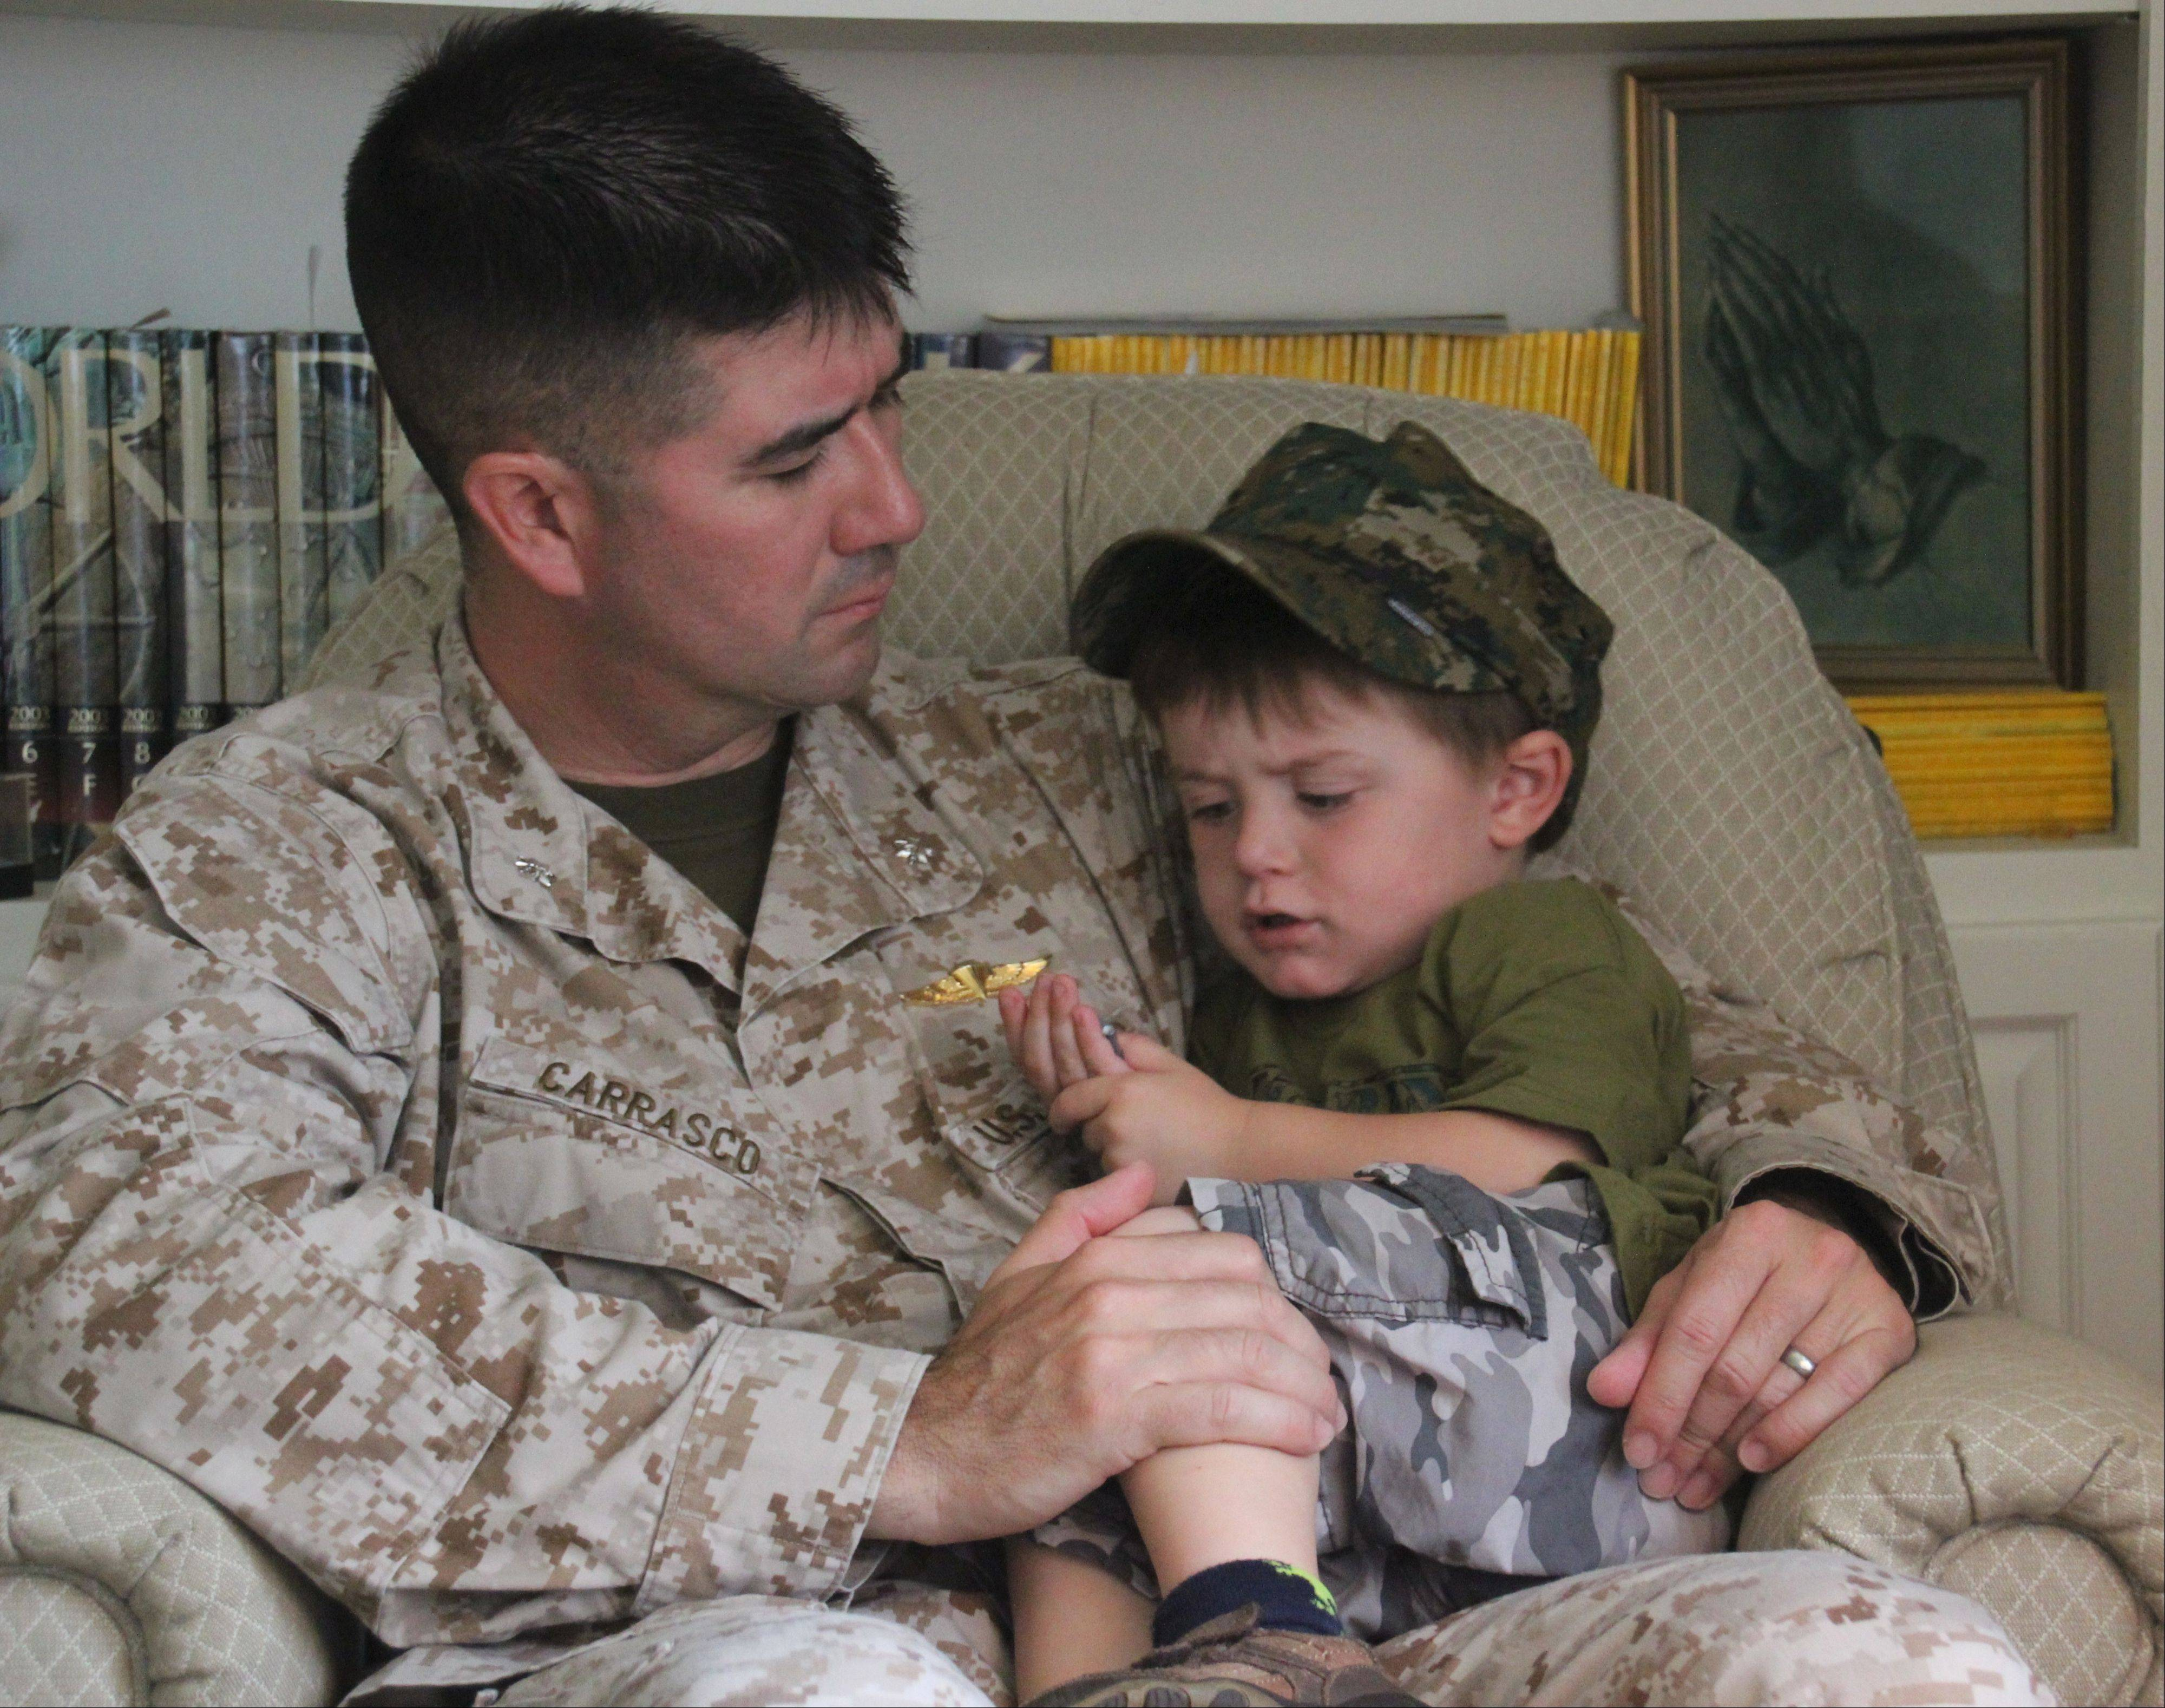 Four days before departing for dangerous military duty at an undisclosed location in the Middle East, Marine Lt. Col. Samuel Carrasco spends quality time with his young son, William.